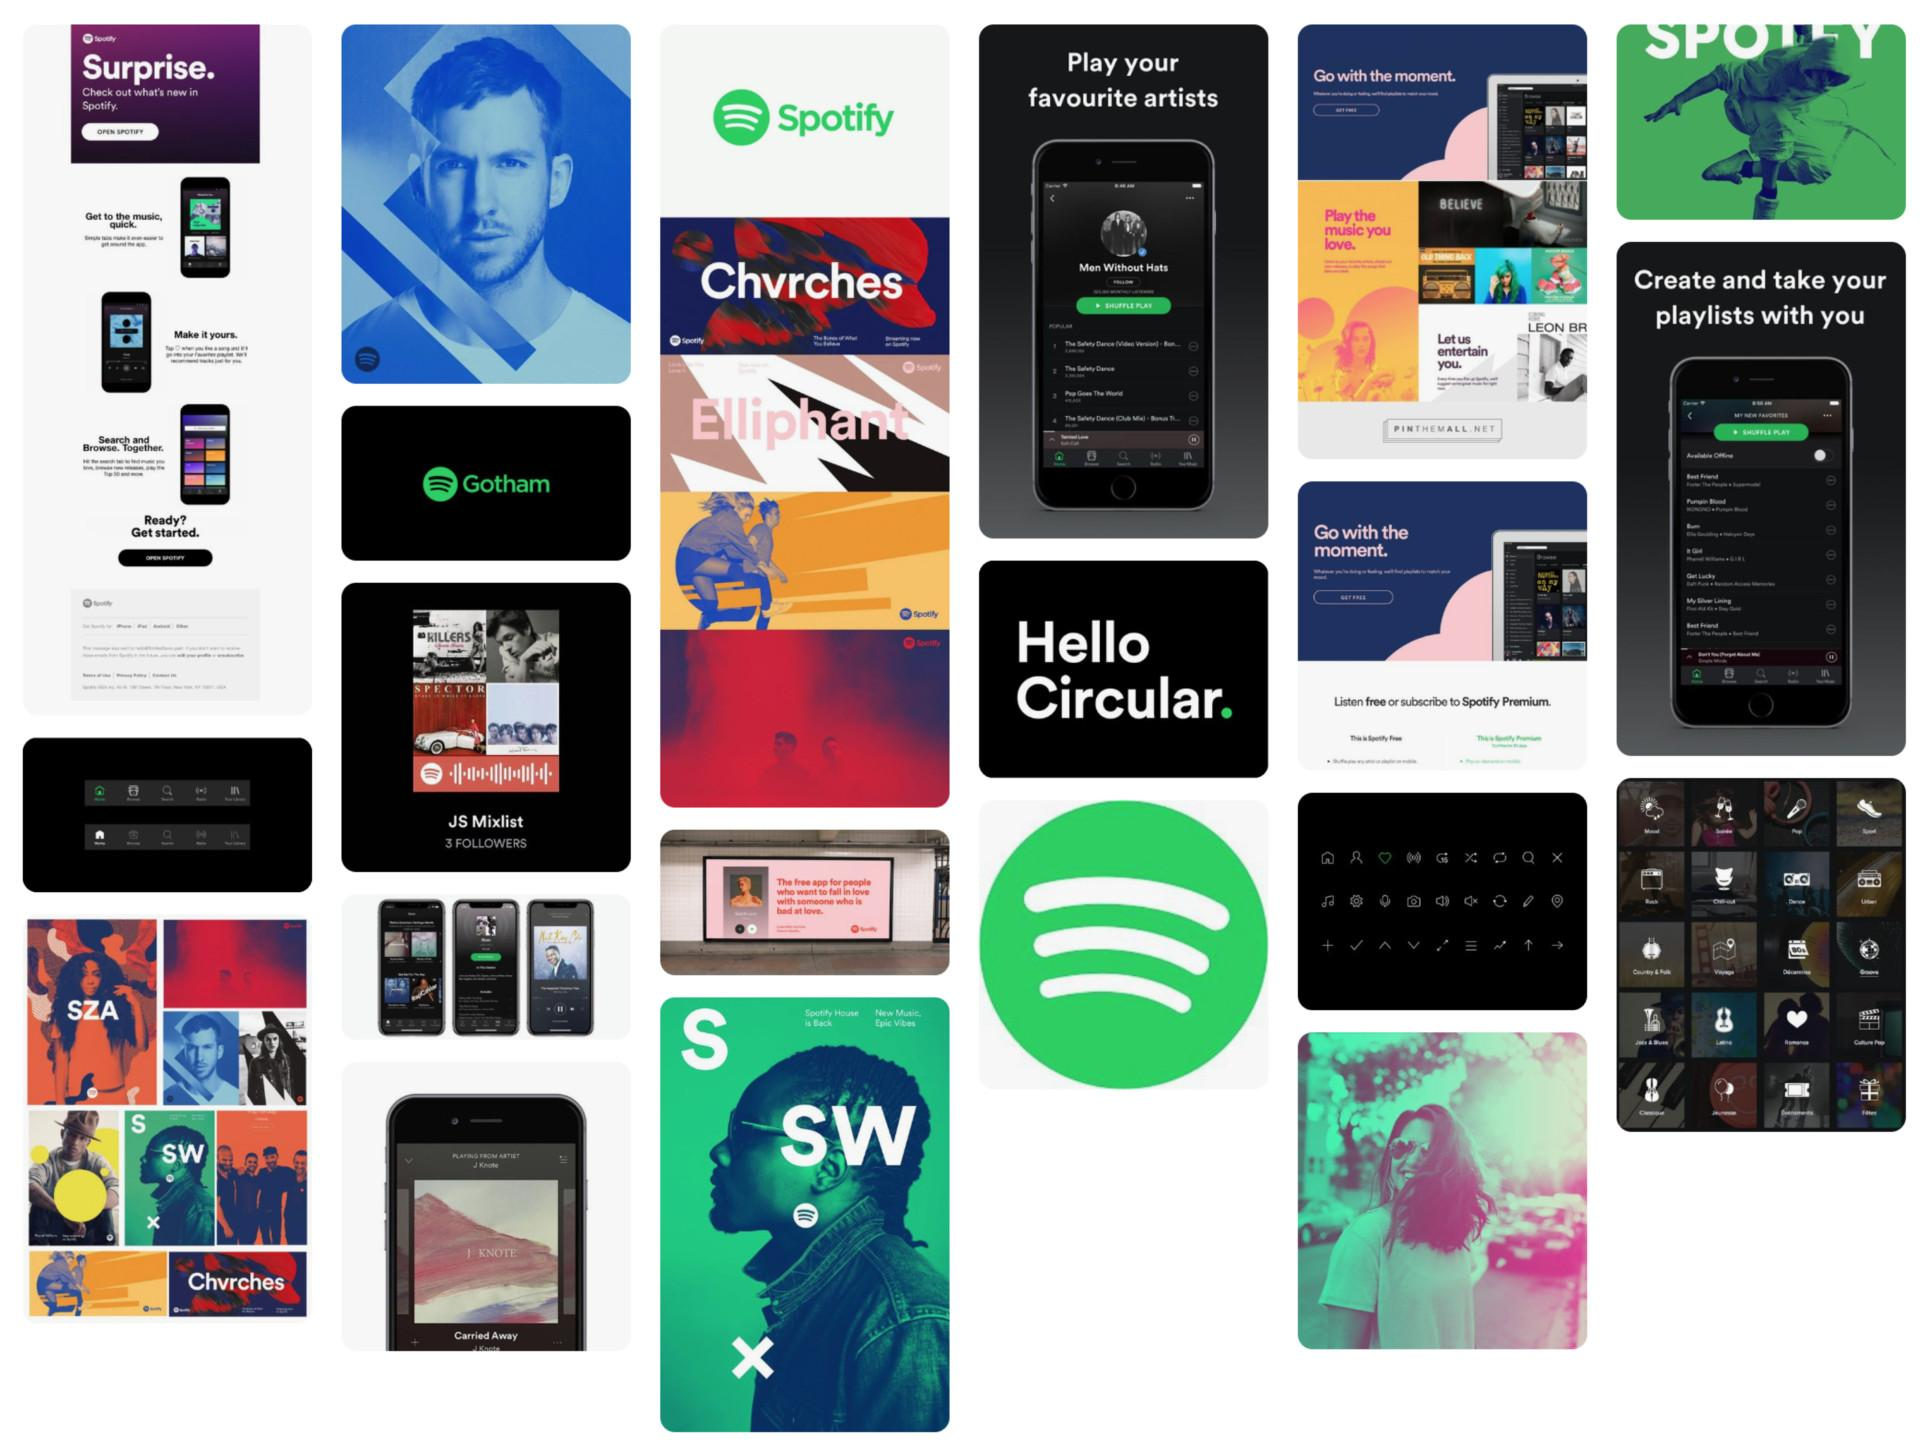 Spotify brand designs - the best UX design portfolios show work based on solid UX design principles.